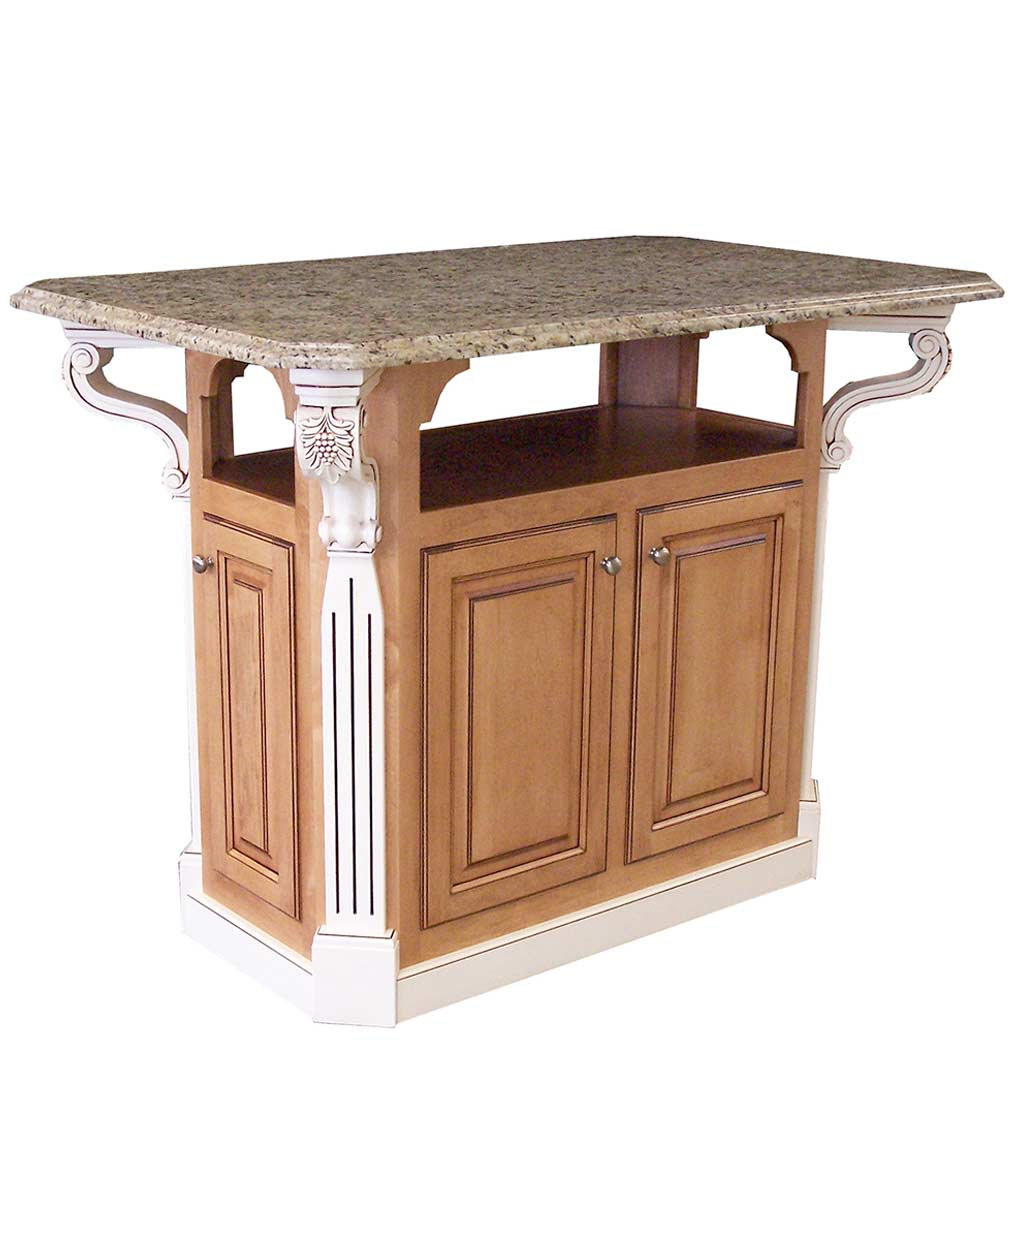 new century kitchen island amish direct furniture kitchen cabinets from china direct